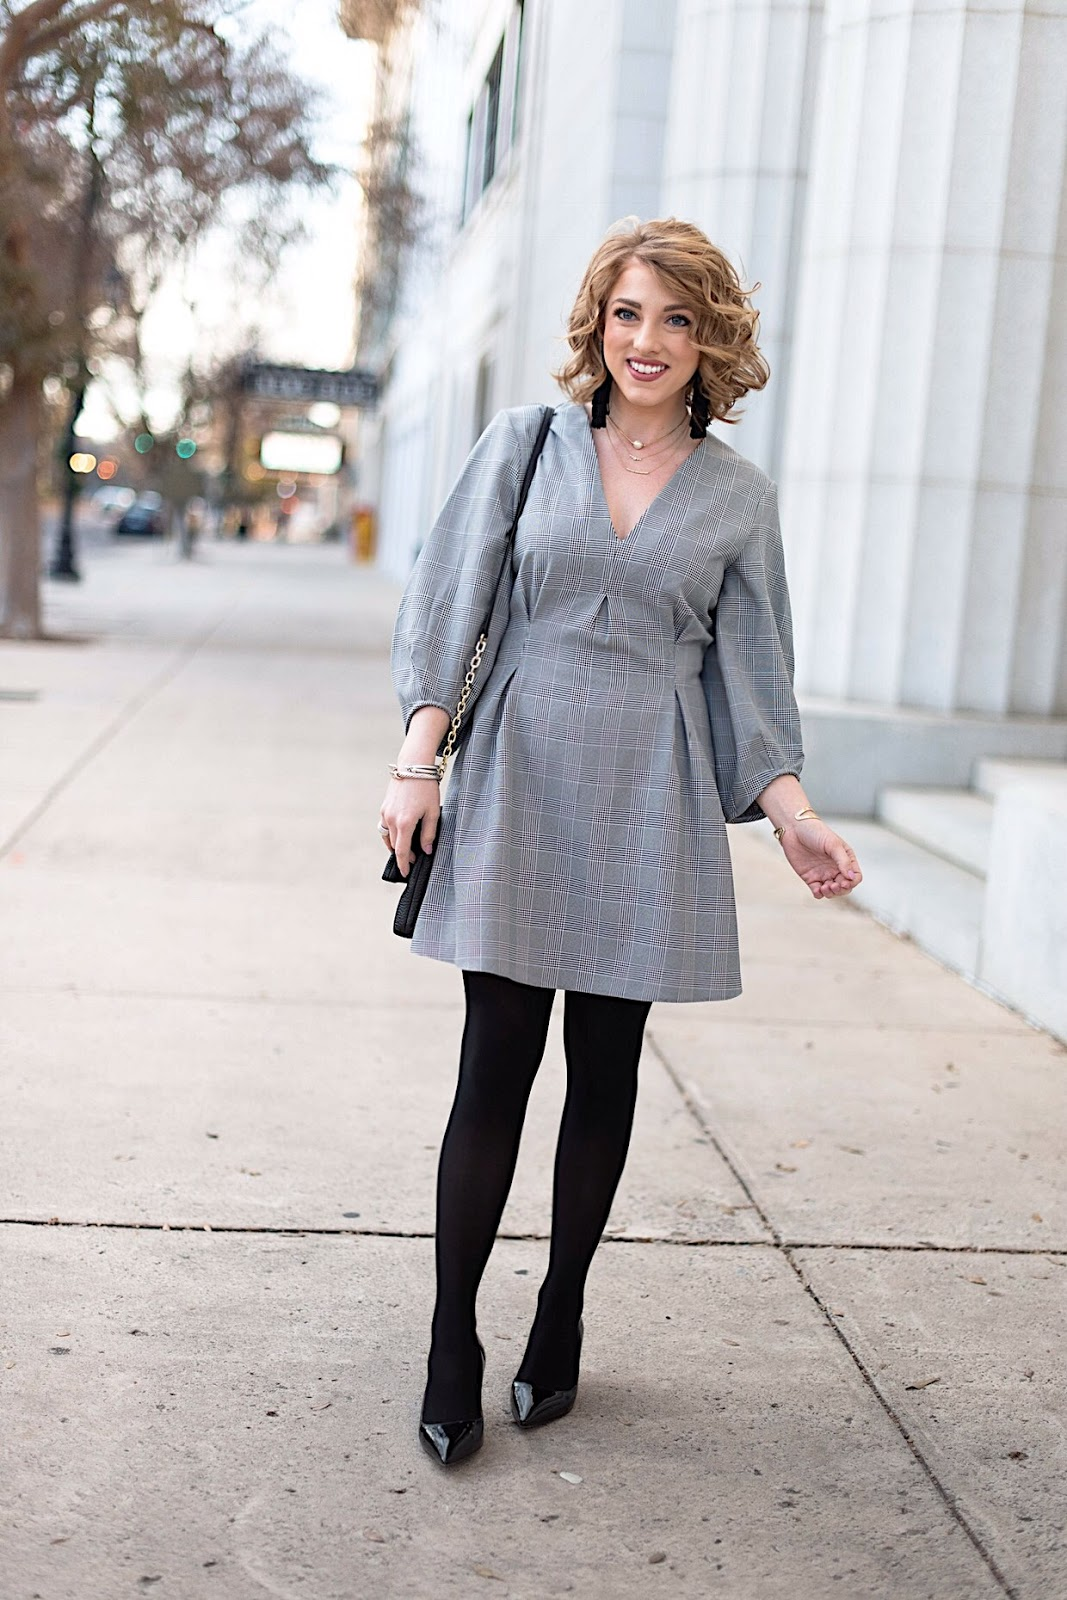 The perfect winter dress for work, church, date night and more - Something Delightful Blog